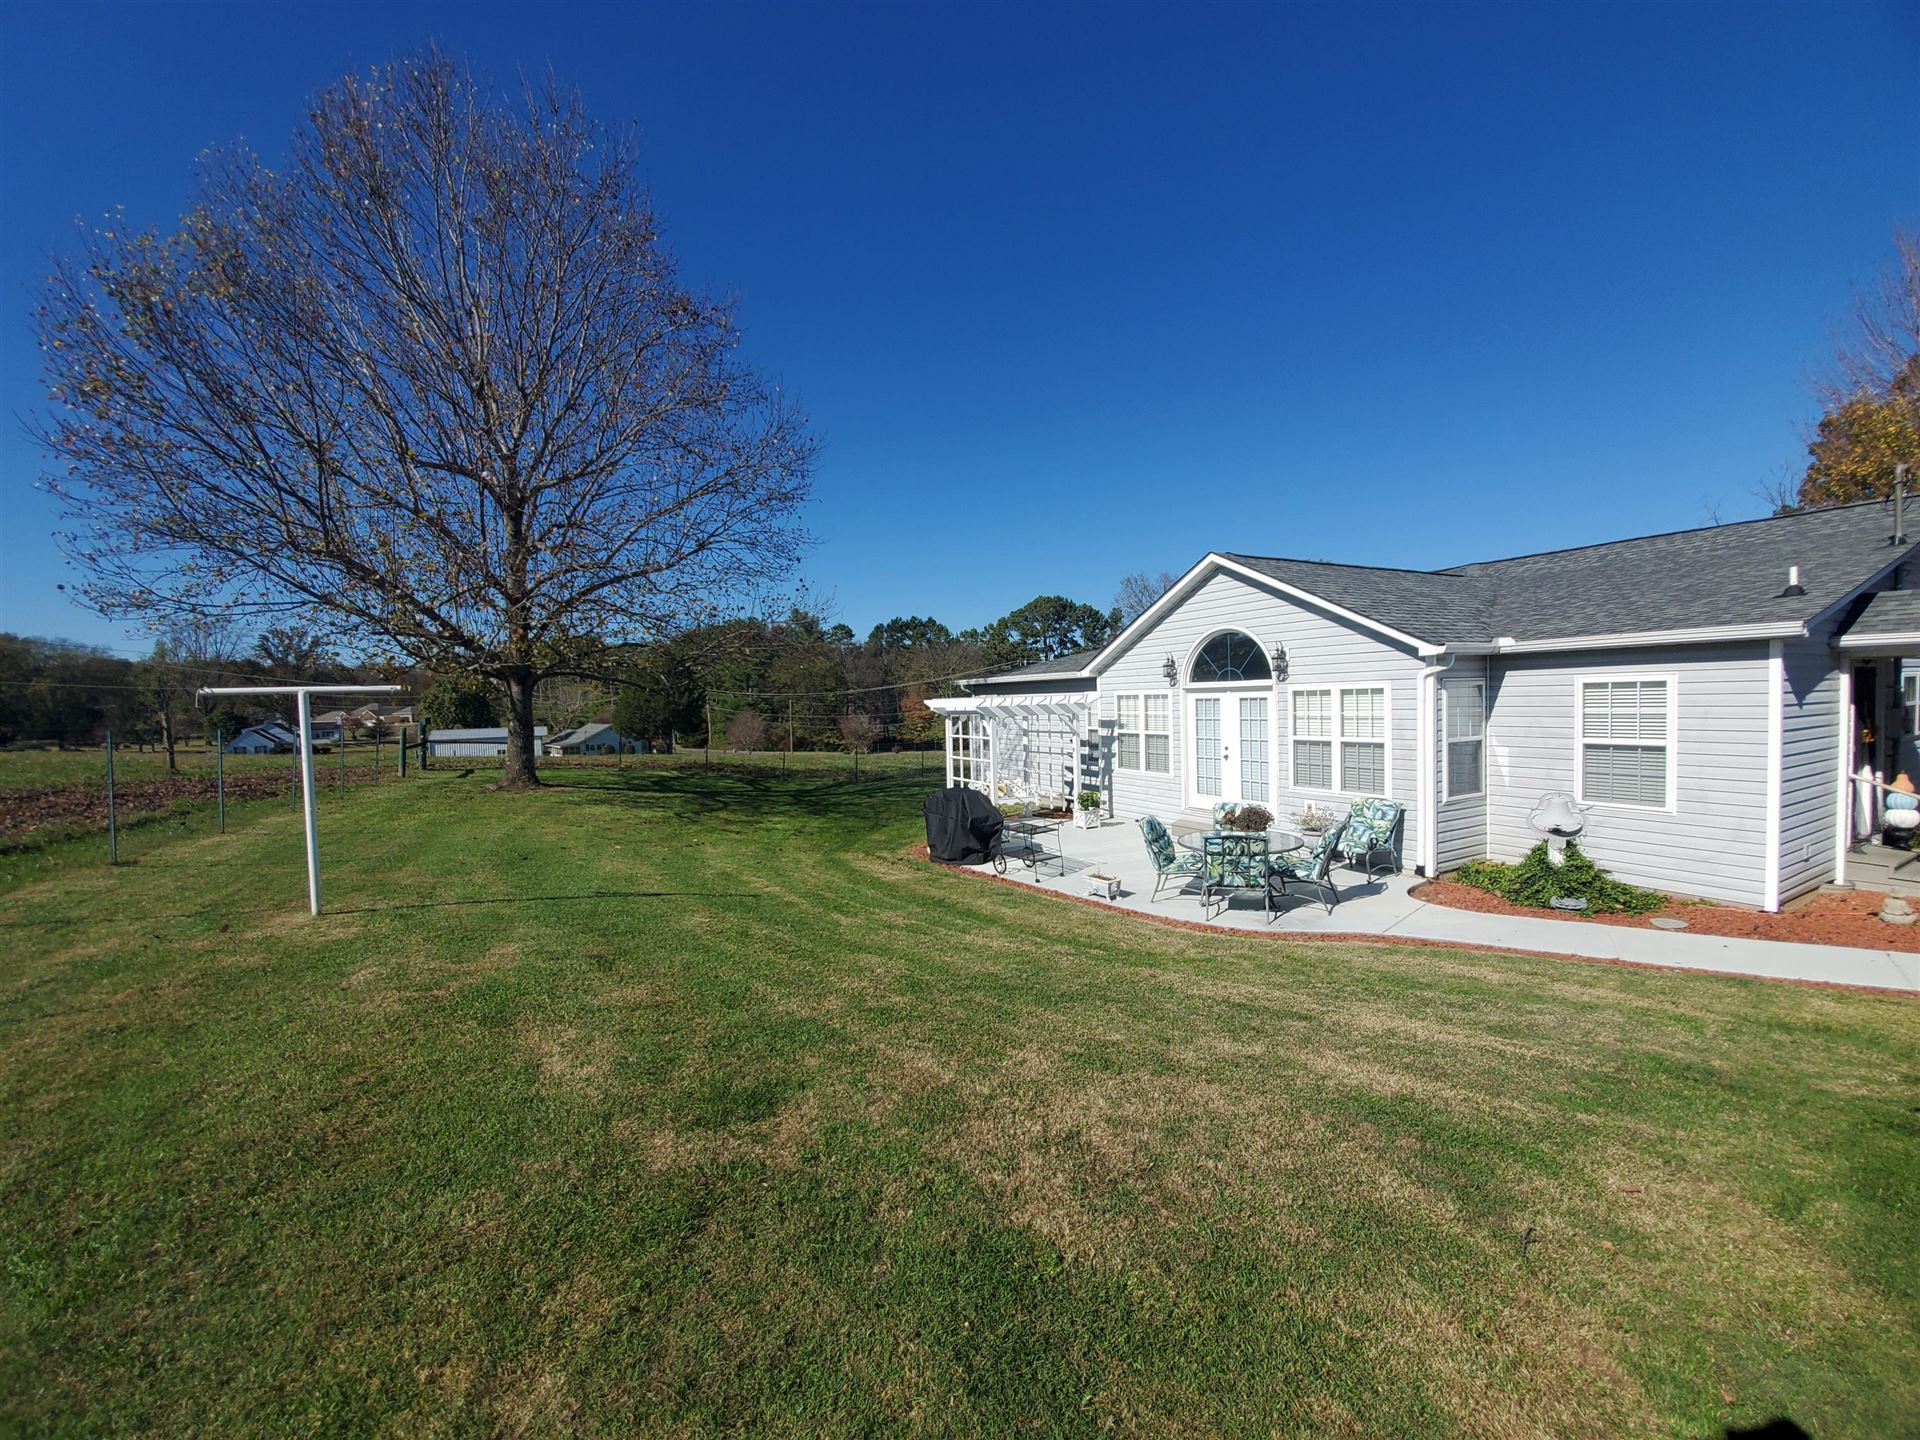 Photo of 1827 Wilkinson Pike, Maryville, TN 37803 (MLS # 1140290)